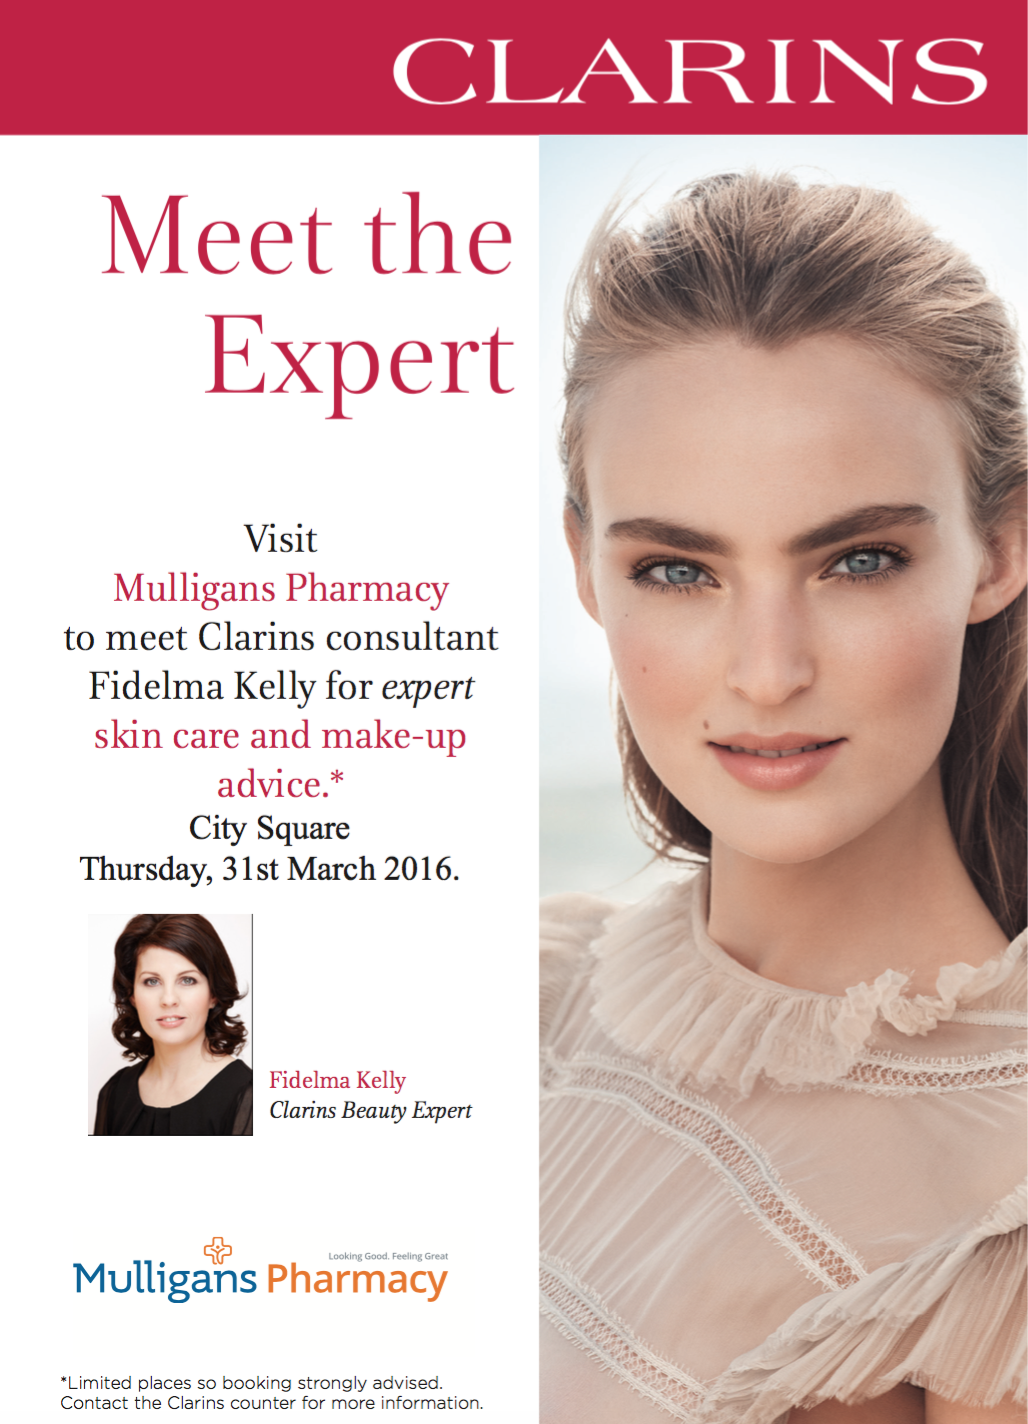 762a83232ecf1 We are delighted to welcome #Clarins #Beauty #Expert Fidelma Kelly to our  City